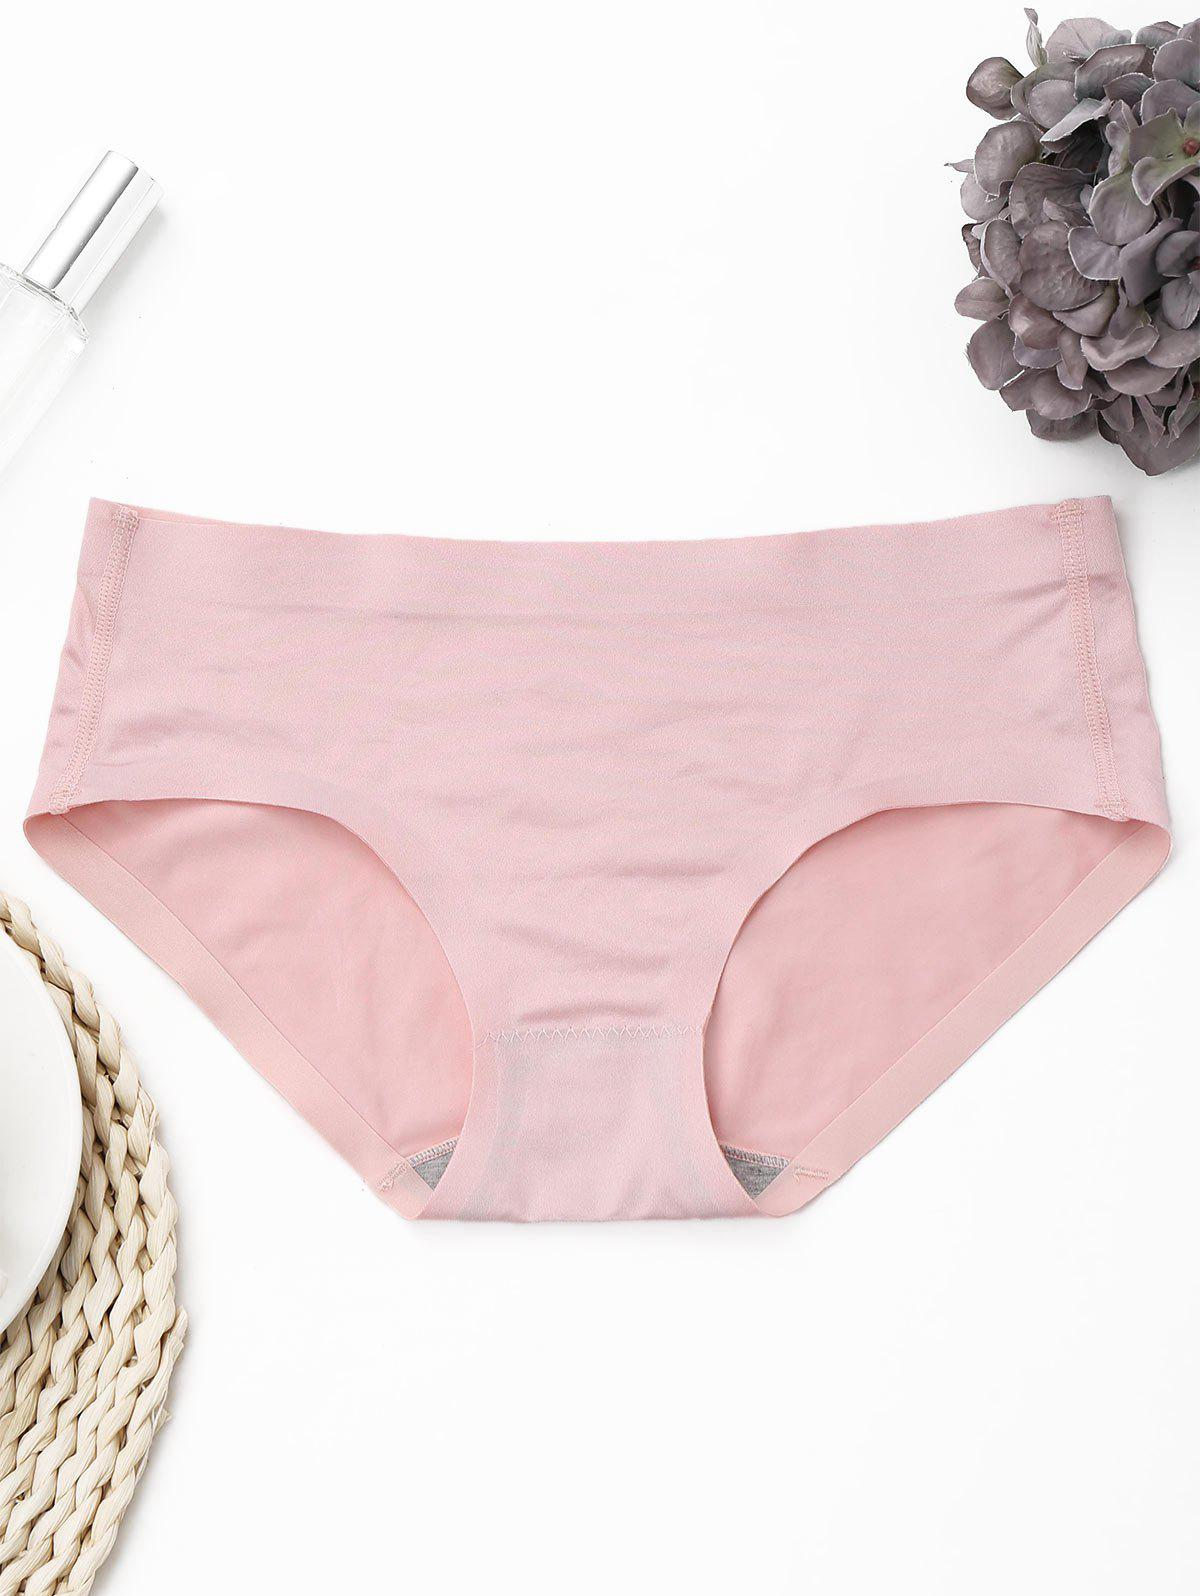 Chic Seamless Mid Rise Panties